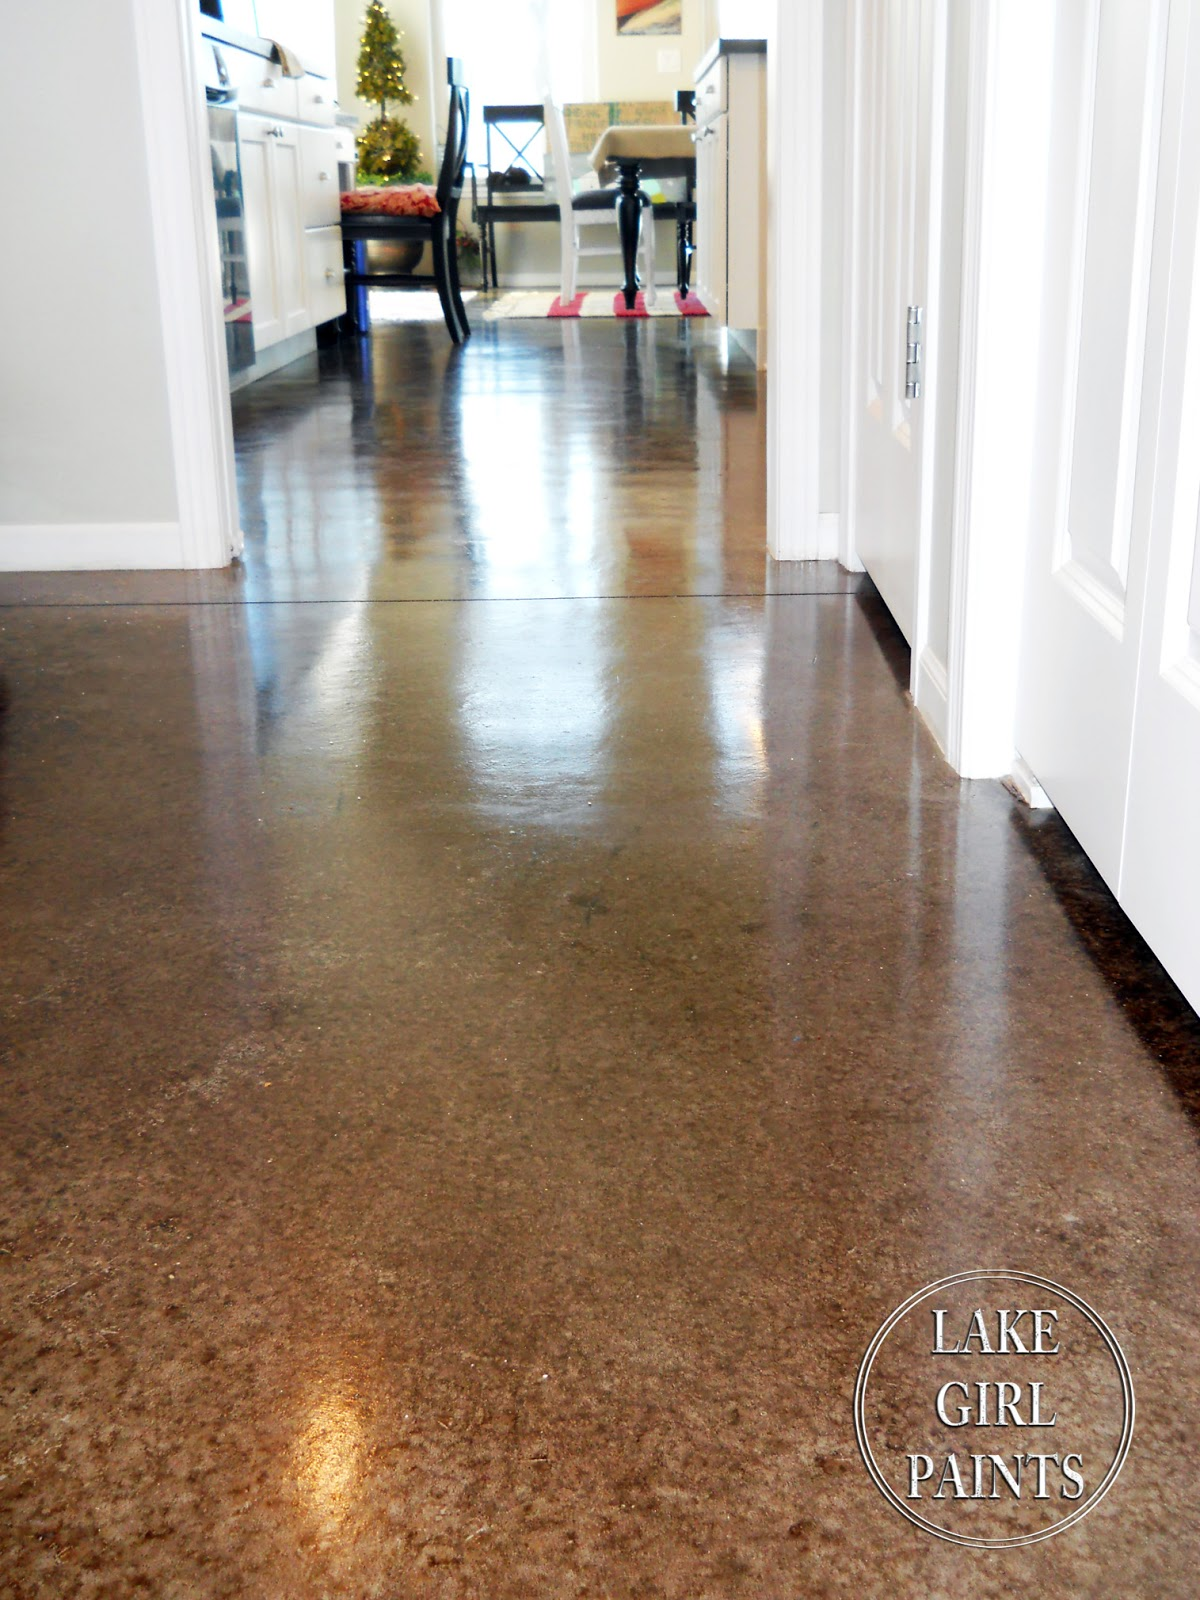 Lake living in nebraska home tour debbiedoo 39 s - Concrete floors in home ...